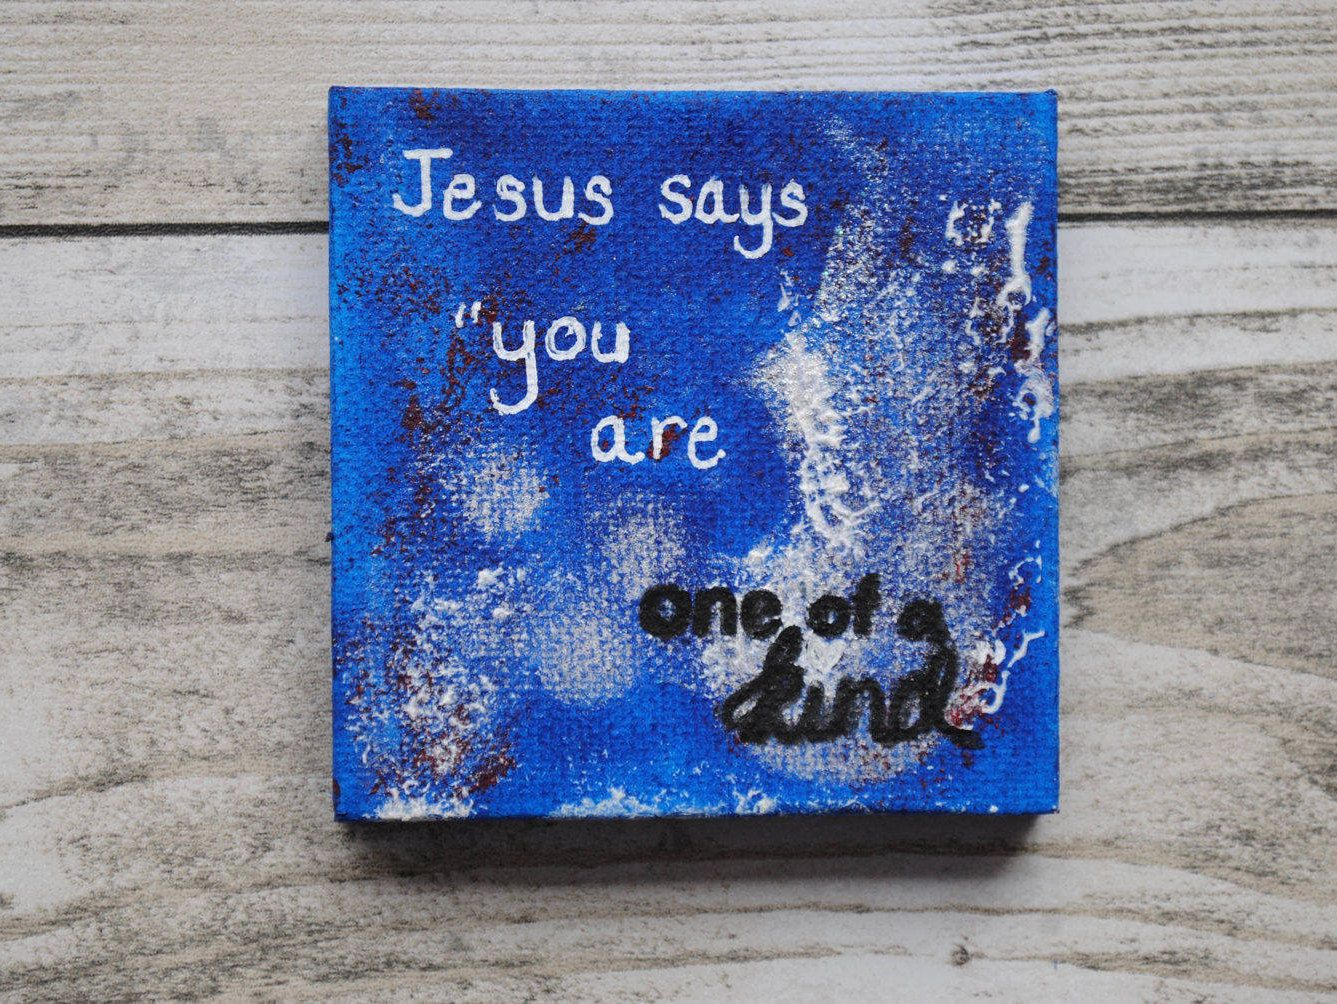 Christian Painting Mixed Media Art Mini Gift Religious Wall Spiritual Birthday Mothers Day Women Bible Verse FREE UK SHIPPING By